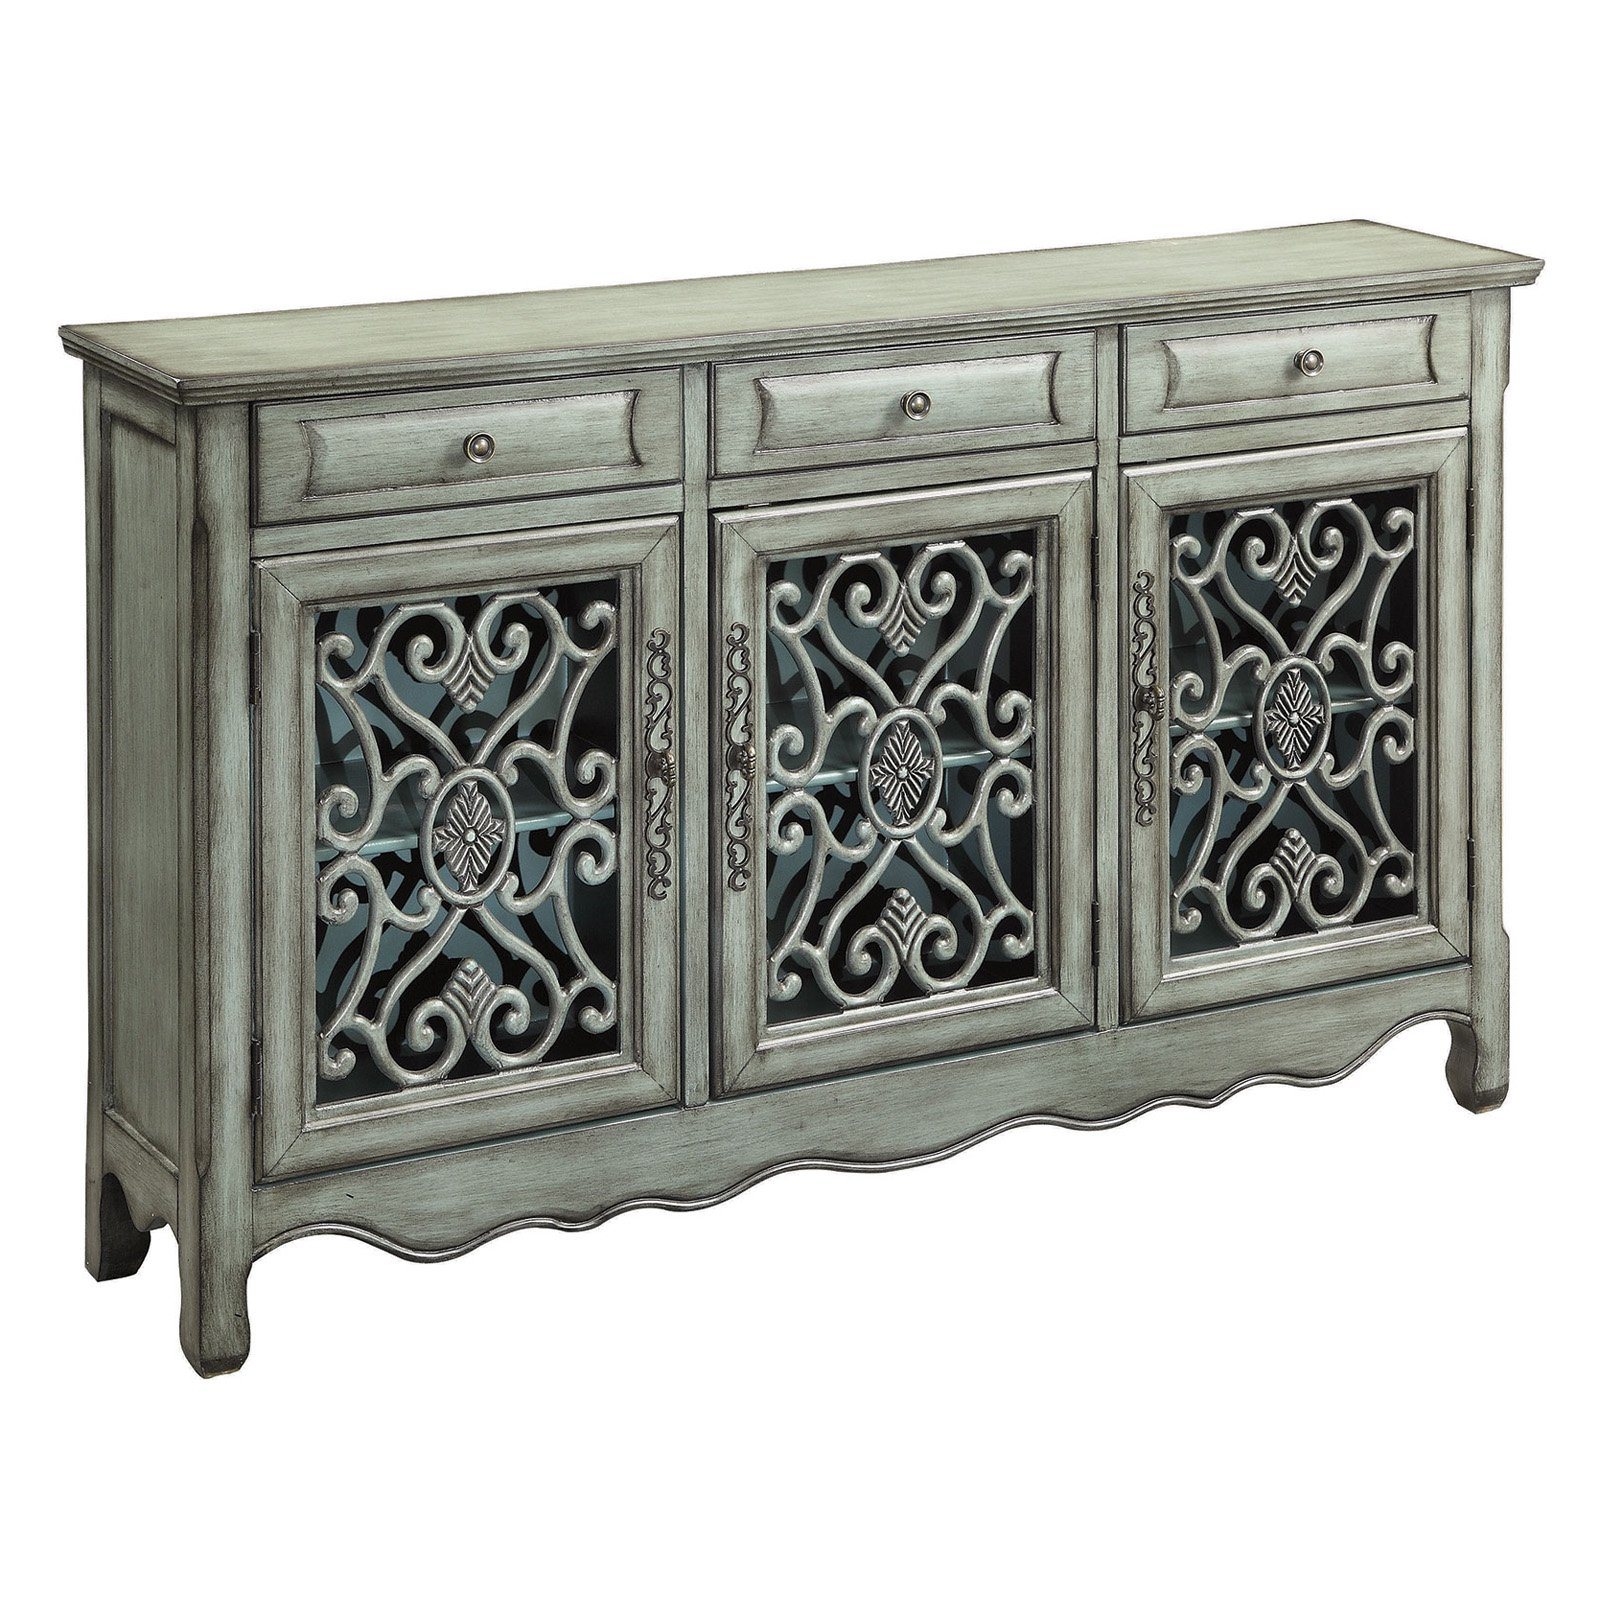 Coaster Company Accent Cabinet, Antique Green